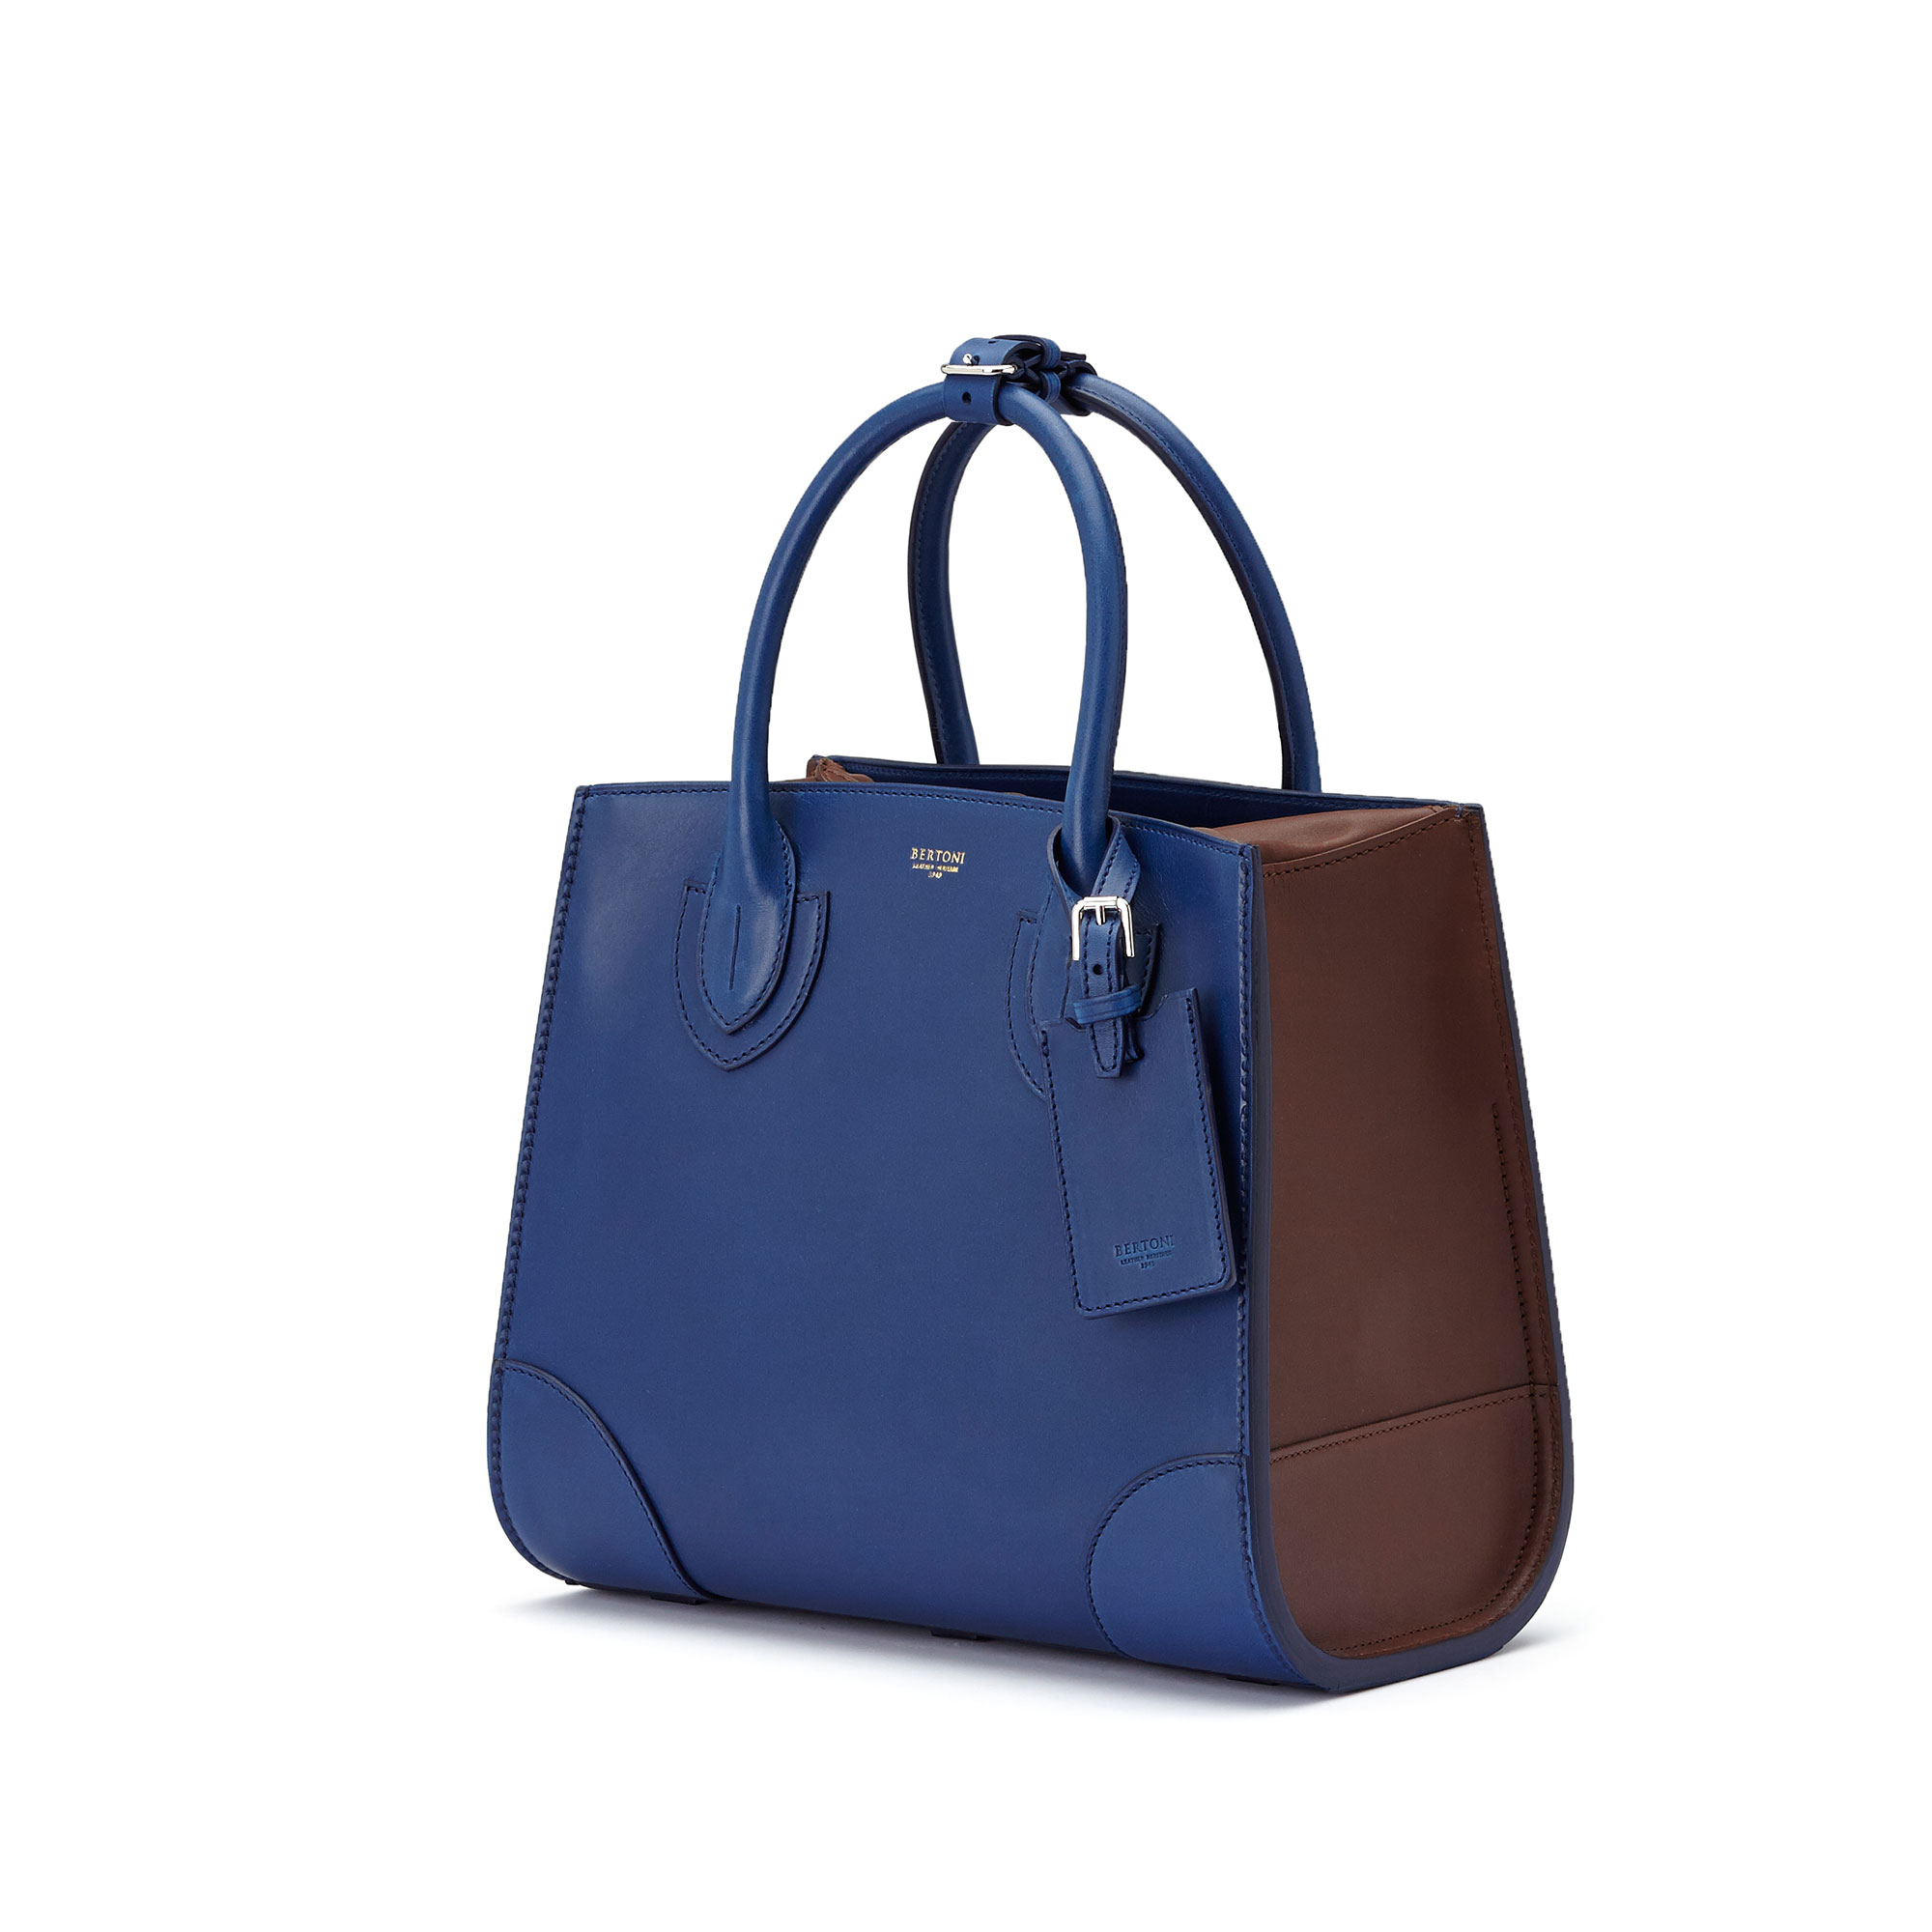 The blue, terrabruciata and brown french calf Darcy medium bag by Bertoni 1949 03